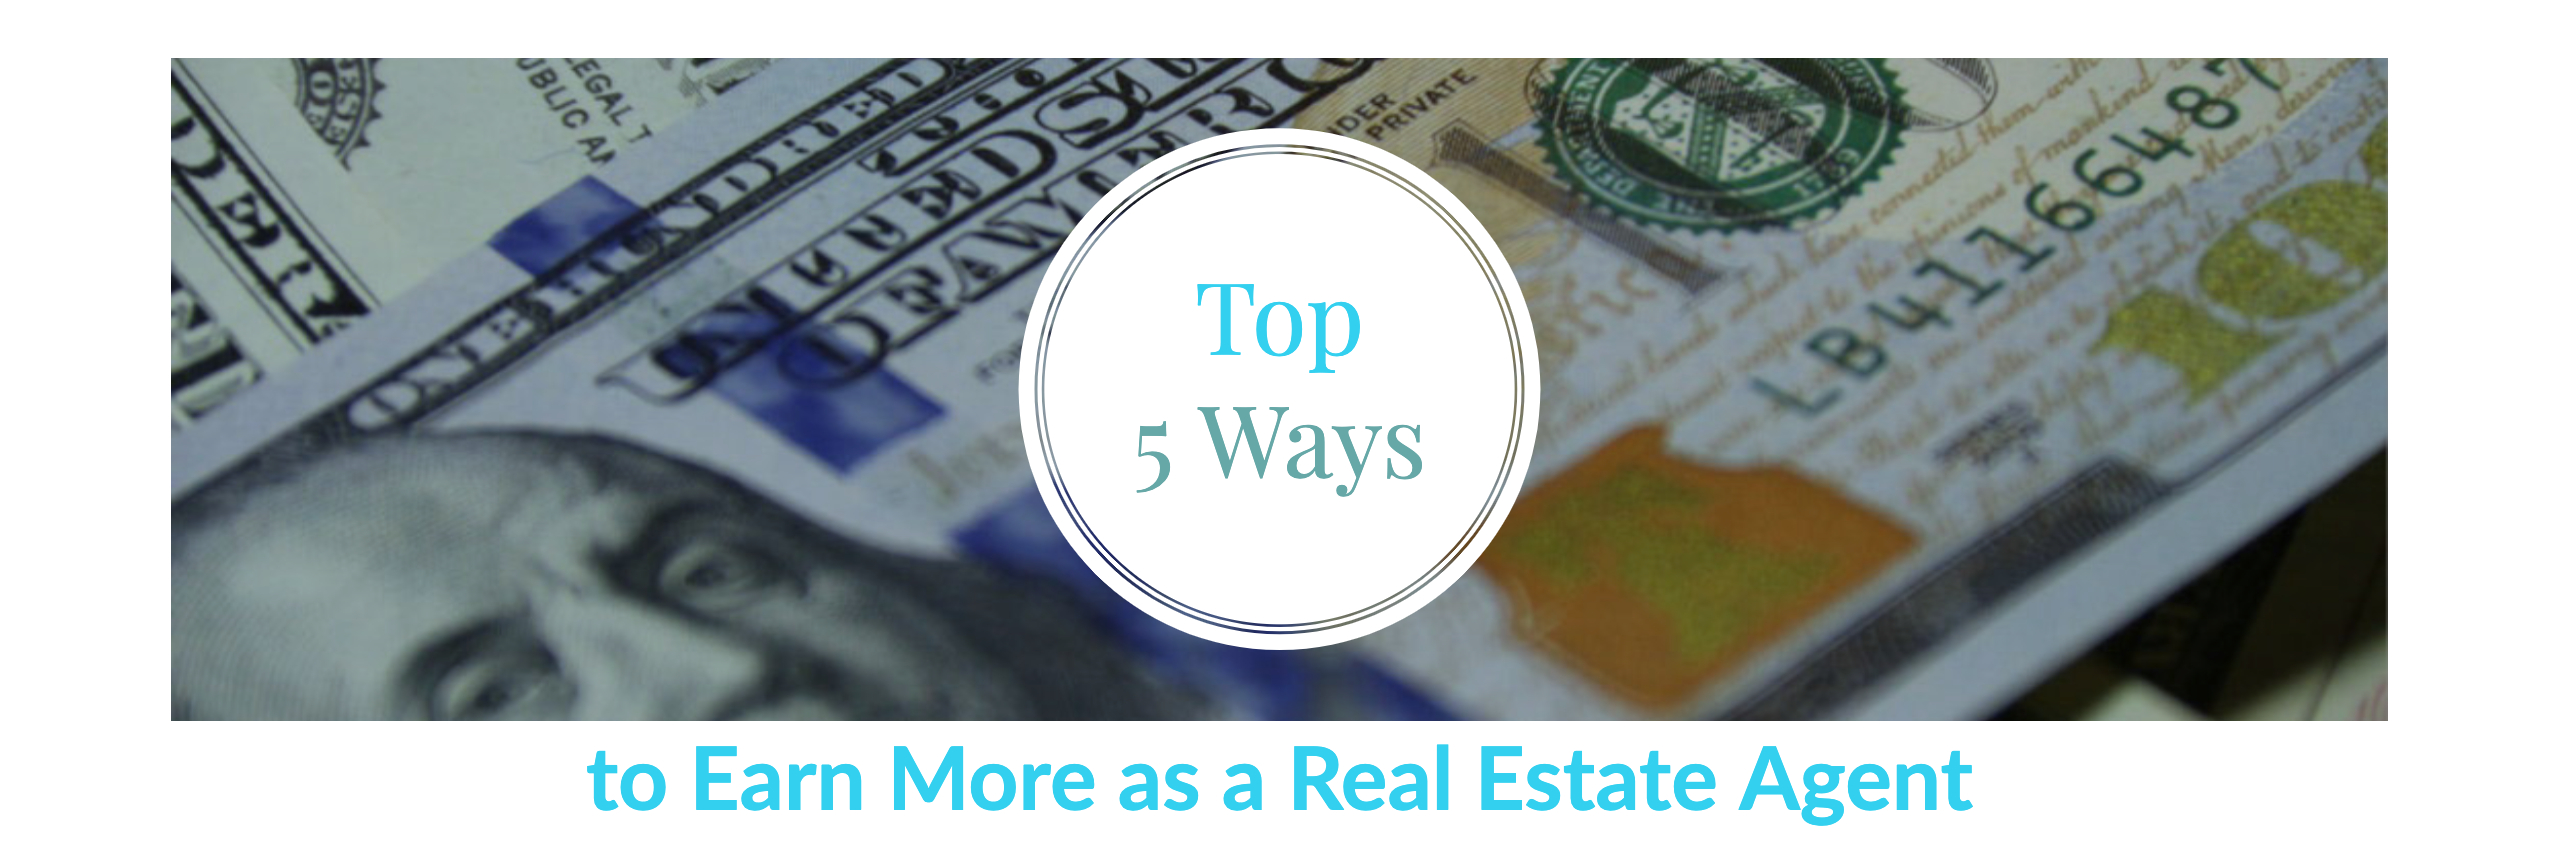 Top 5 Ways to Earn More as a Real Estate Agent